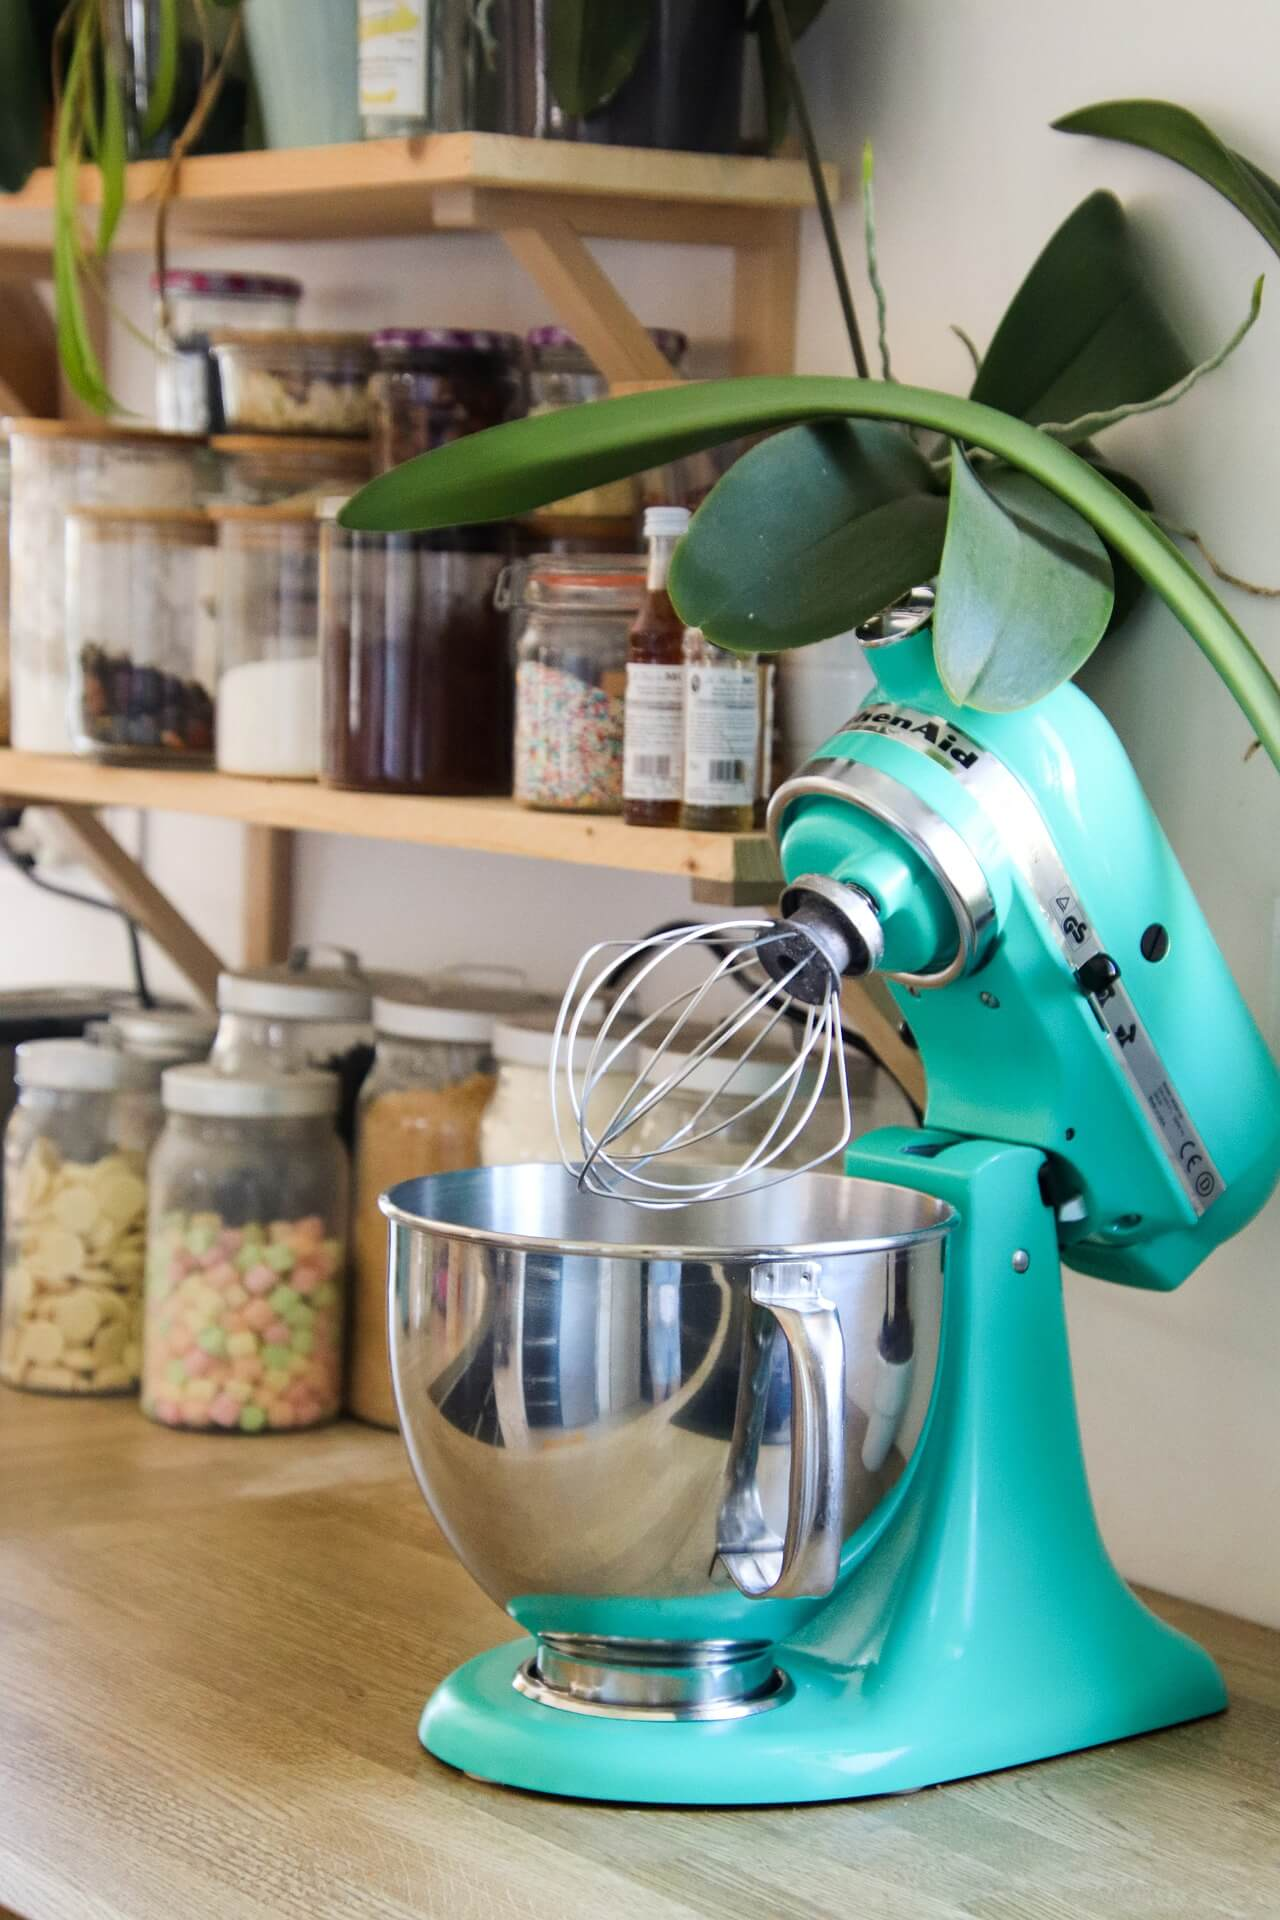 Whісh KitchenAid Food Processor Shоuld Yоu Choose